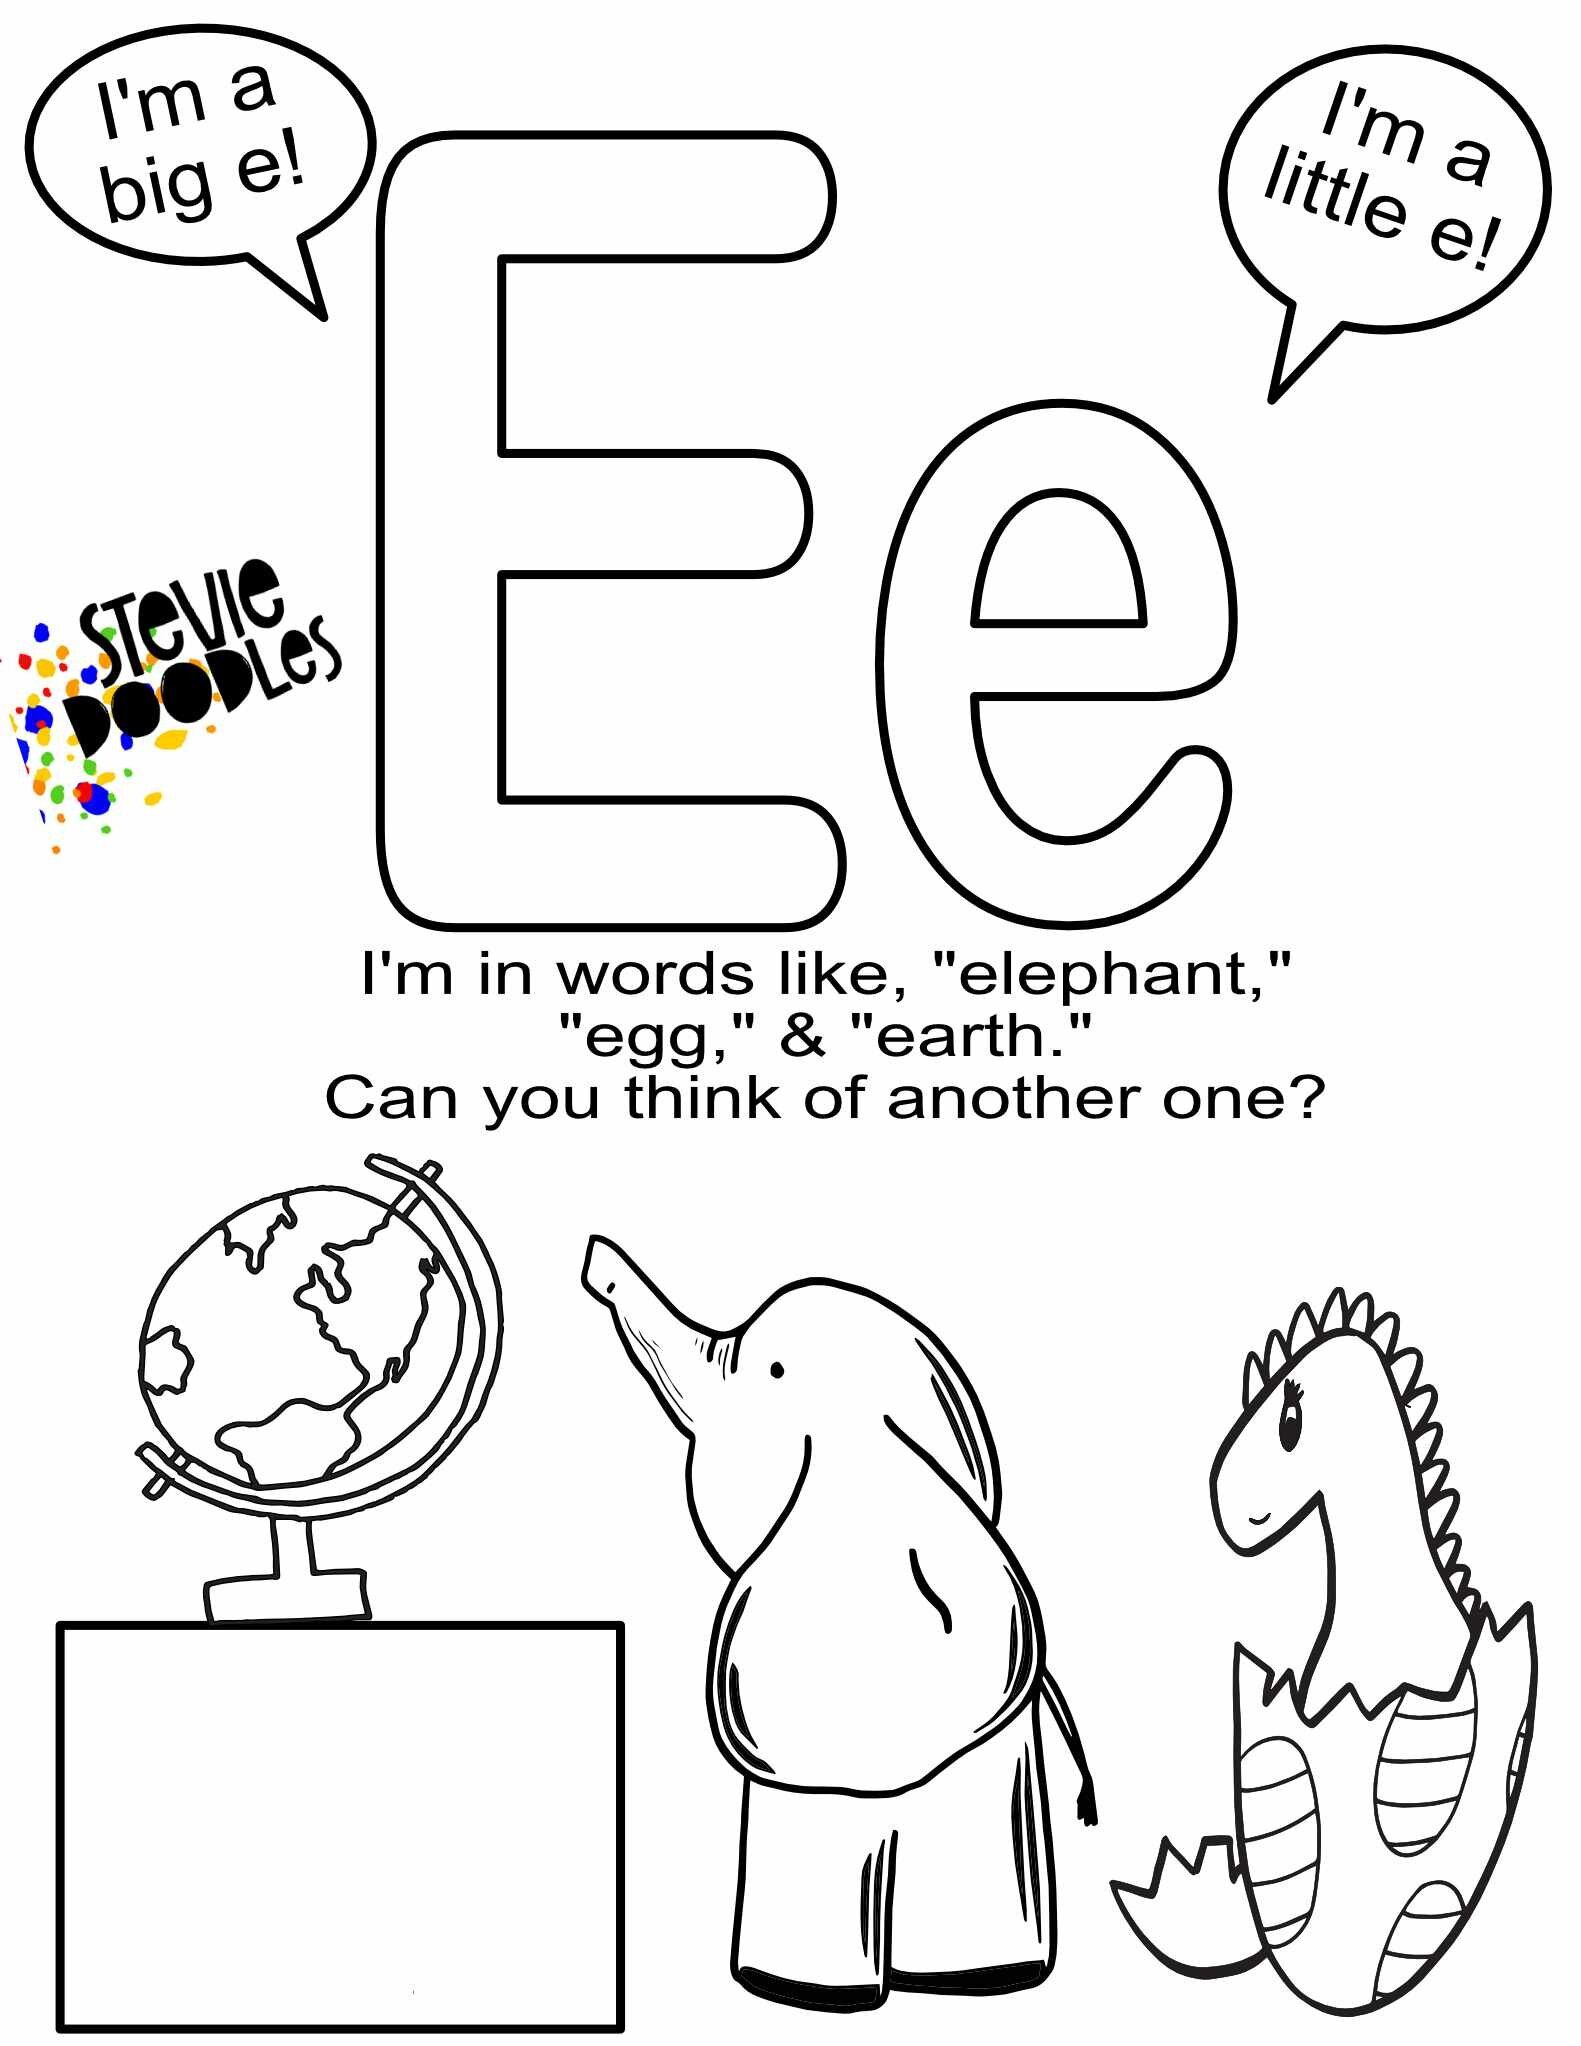 Free Alphabet Coloring Pages 26 Free Printable Coloring Pages Stevie Doodles In 2020 Alphabet Coloring Pages Alphabet Coloring Free Preschool Printables [ 2046 x 1581 Pixel ]